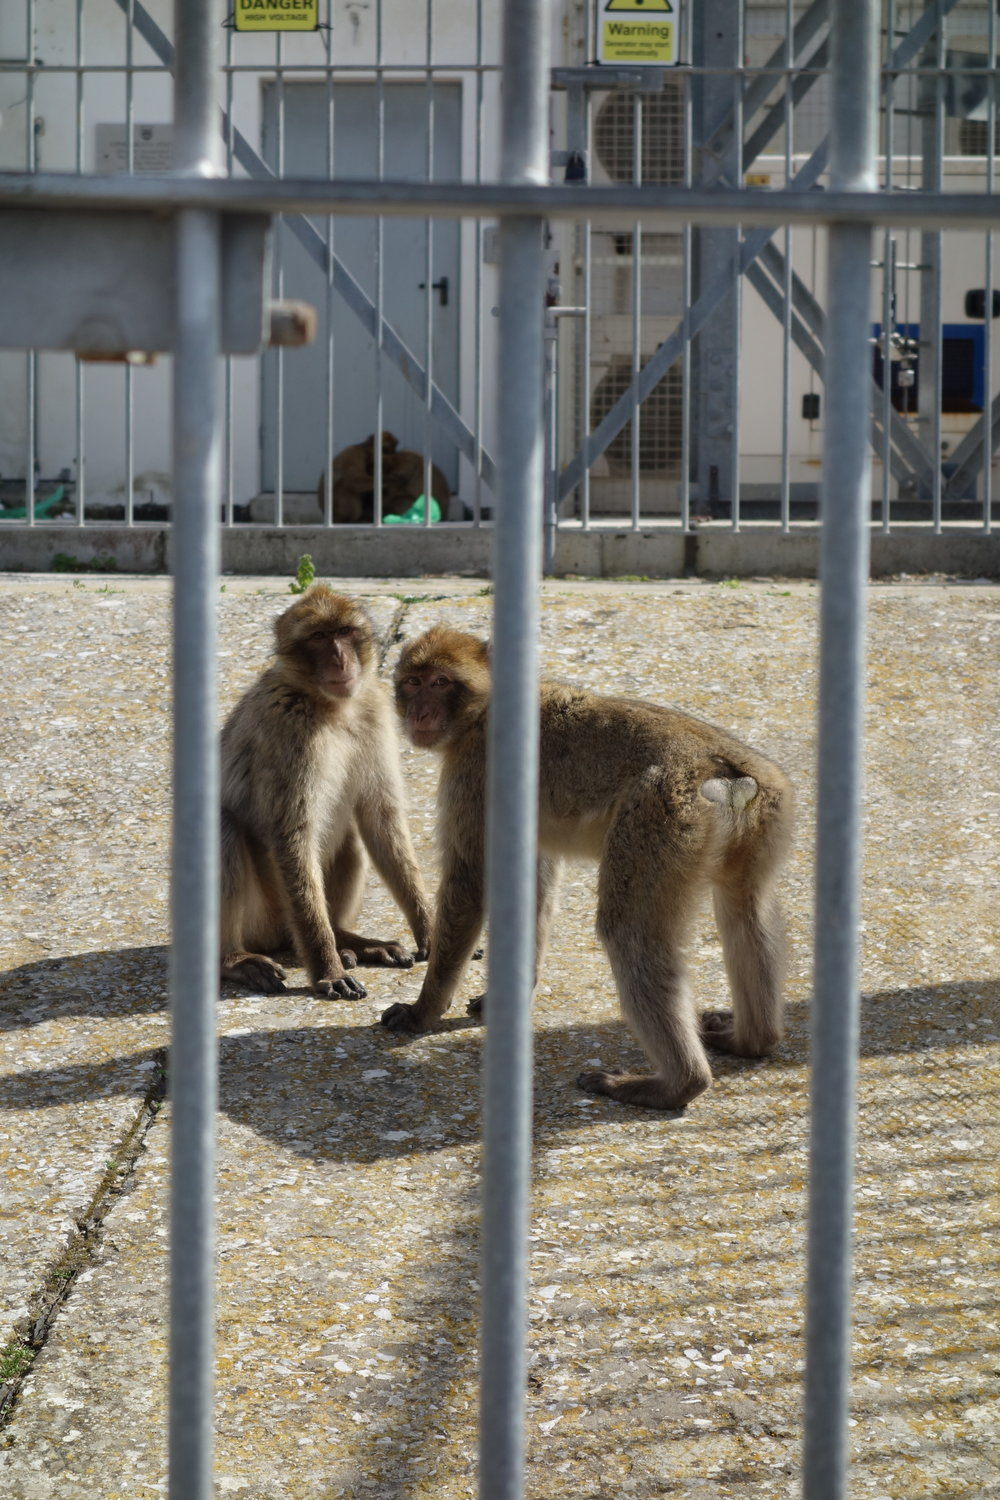 Monkeys on the Rock of Gibraltar can be a nuisance to tourists. Aggressive at times, watch your back for the barbary macaqueswhile visiting Gibraltar.